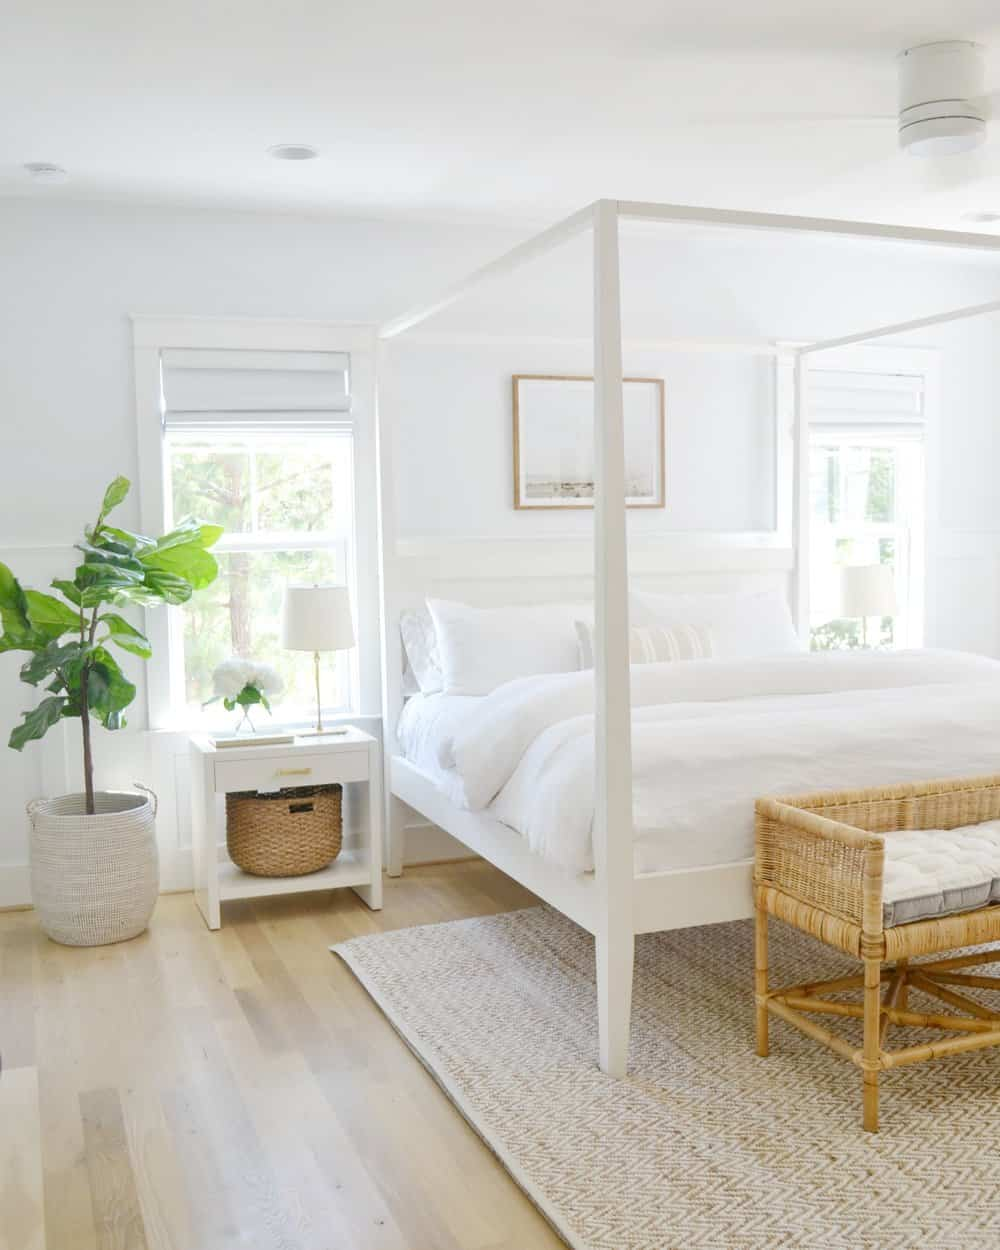 master bedroom with canopy bed, shore bench, dauphine light